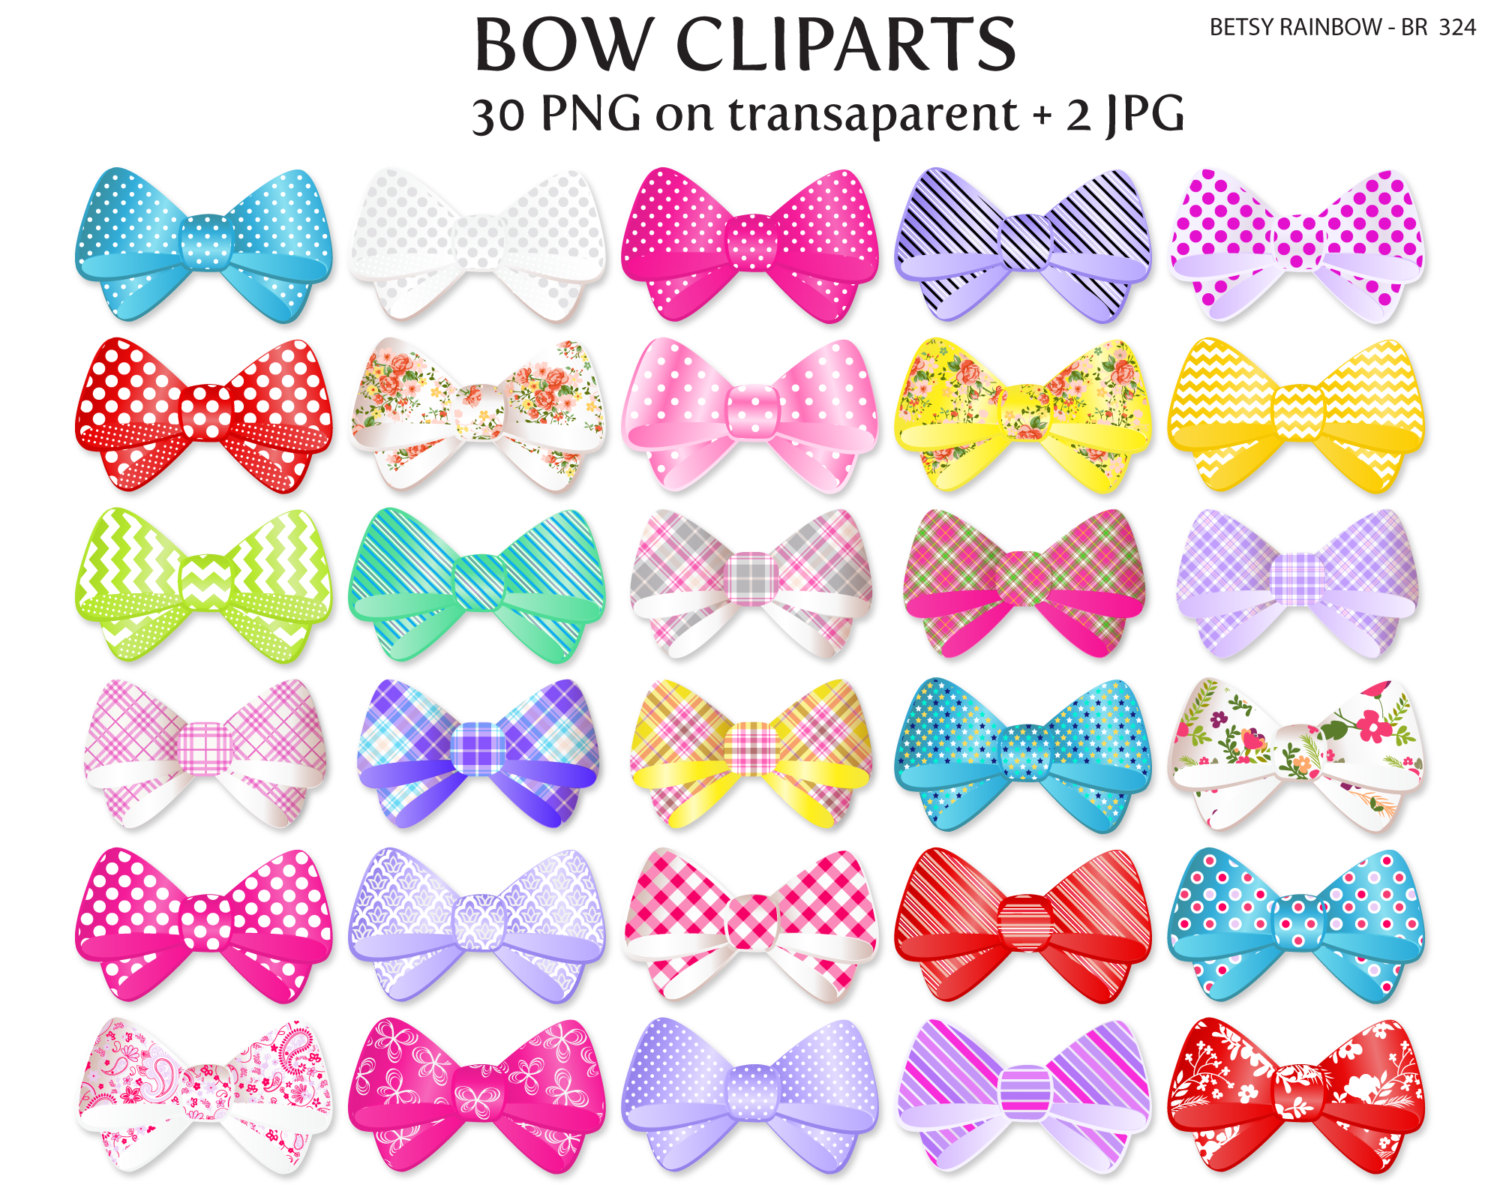 Pink Hair clipart girly bow And cliparts clipart clipart Etsy